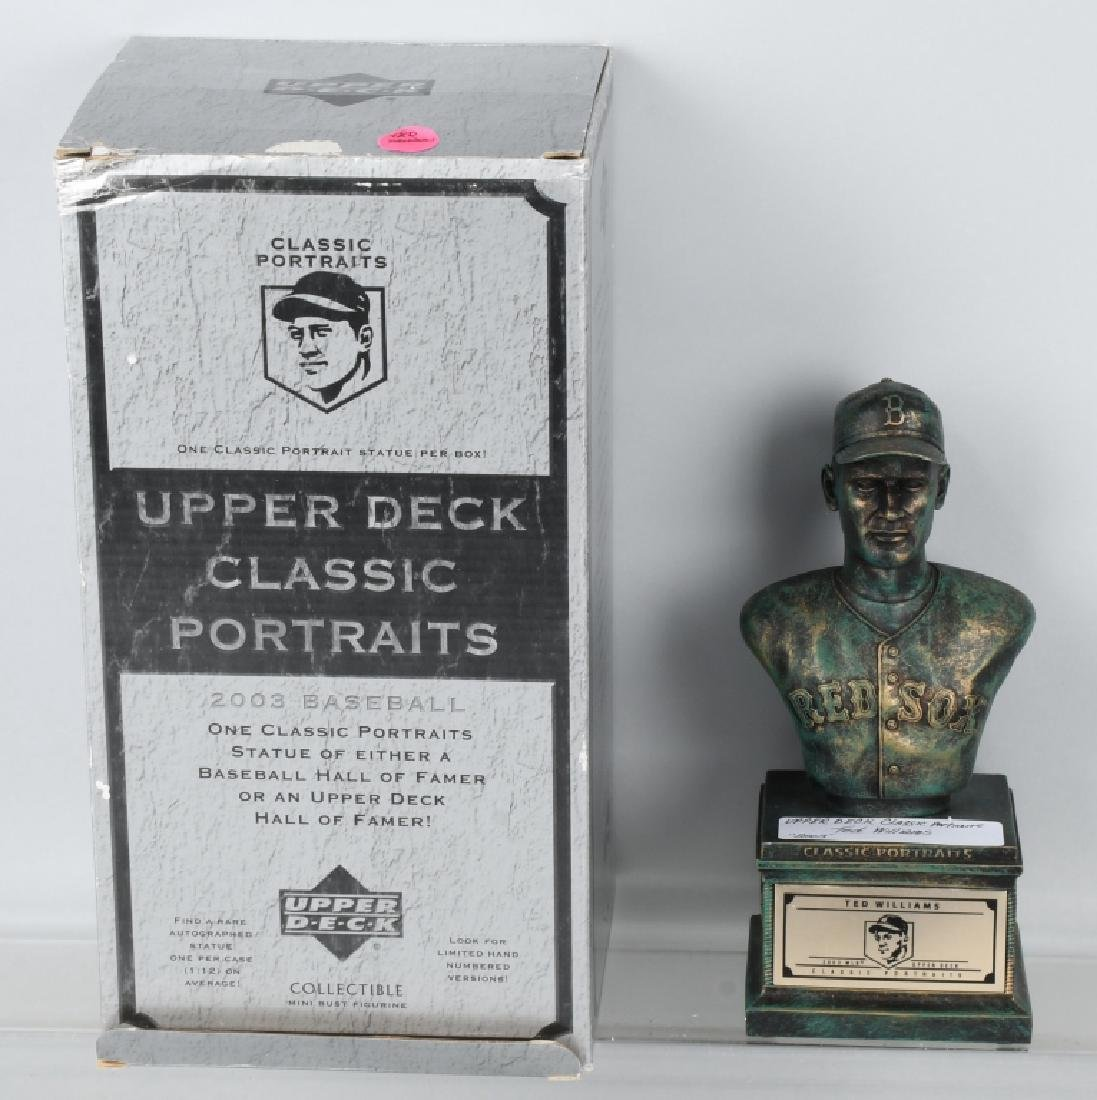 UPPER DECK CLASSIC PORTRAIT BUSTS TED WILLIAMS